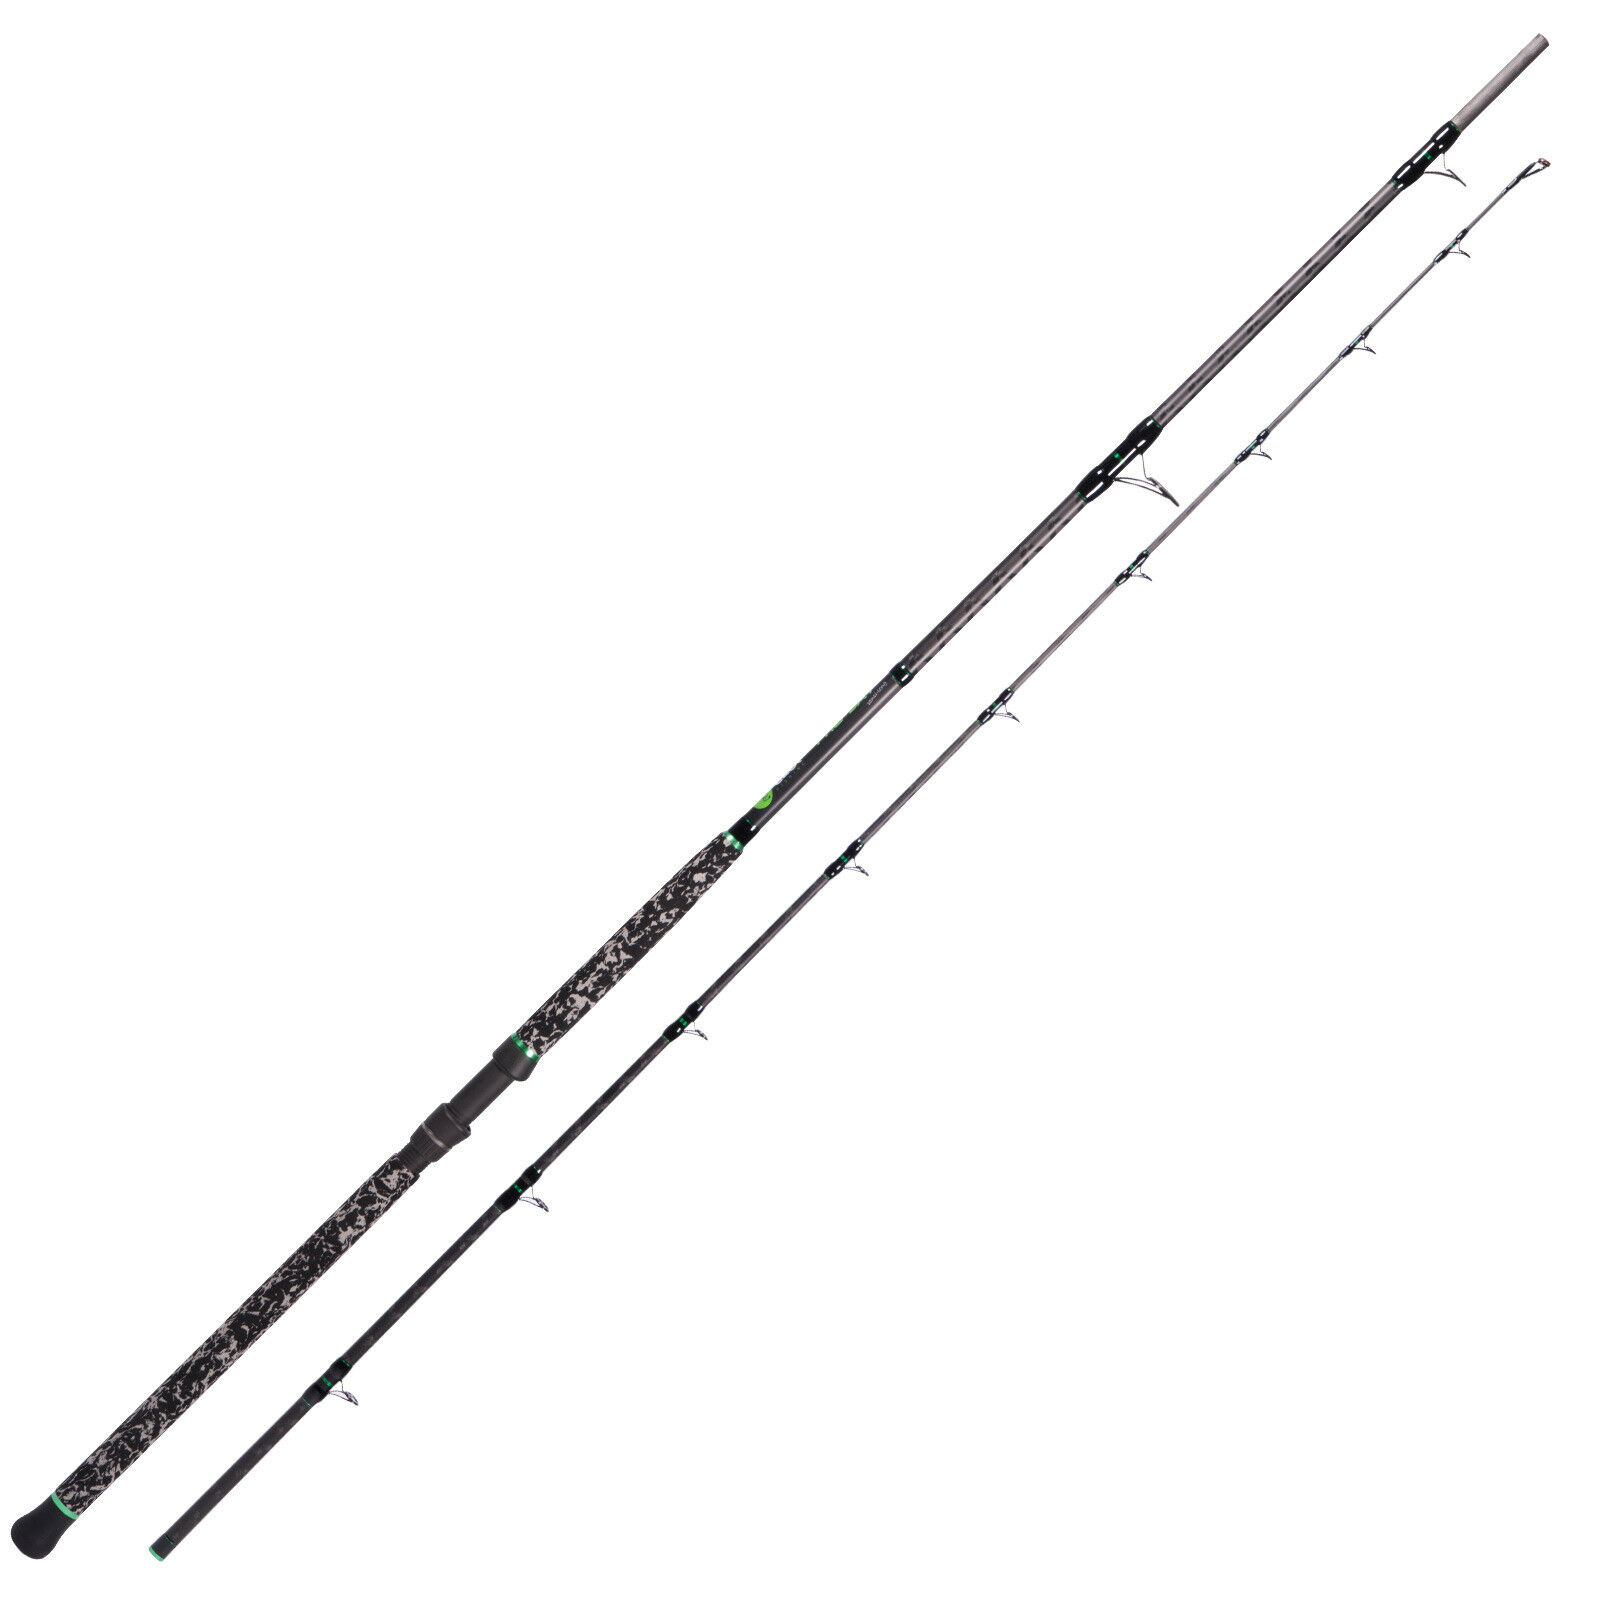 Zeck Welsmote Waller --Pro-Cat Sensi-Long 3,20m hasta 180g